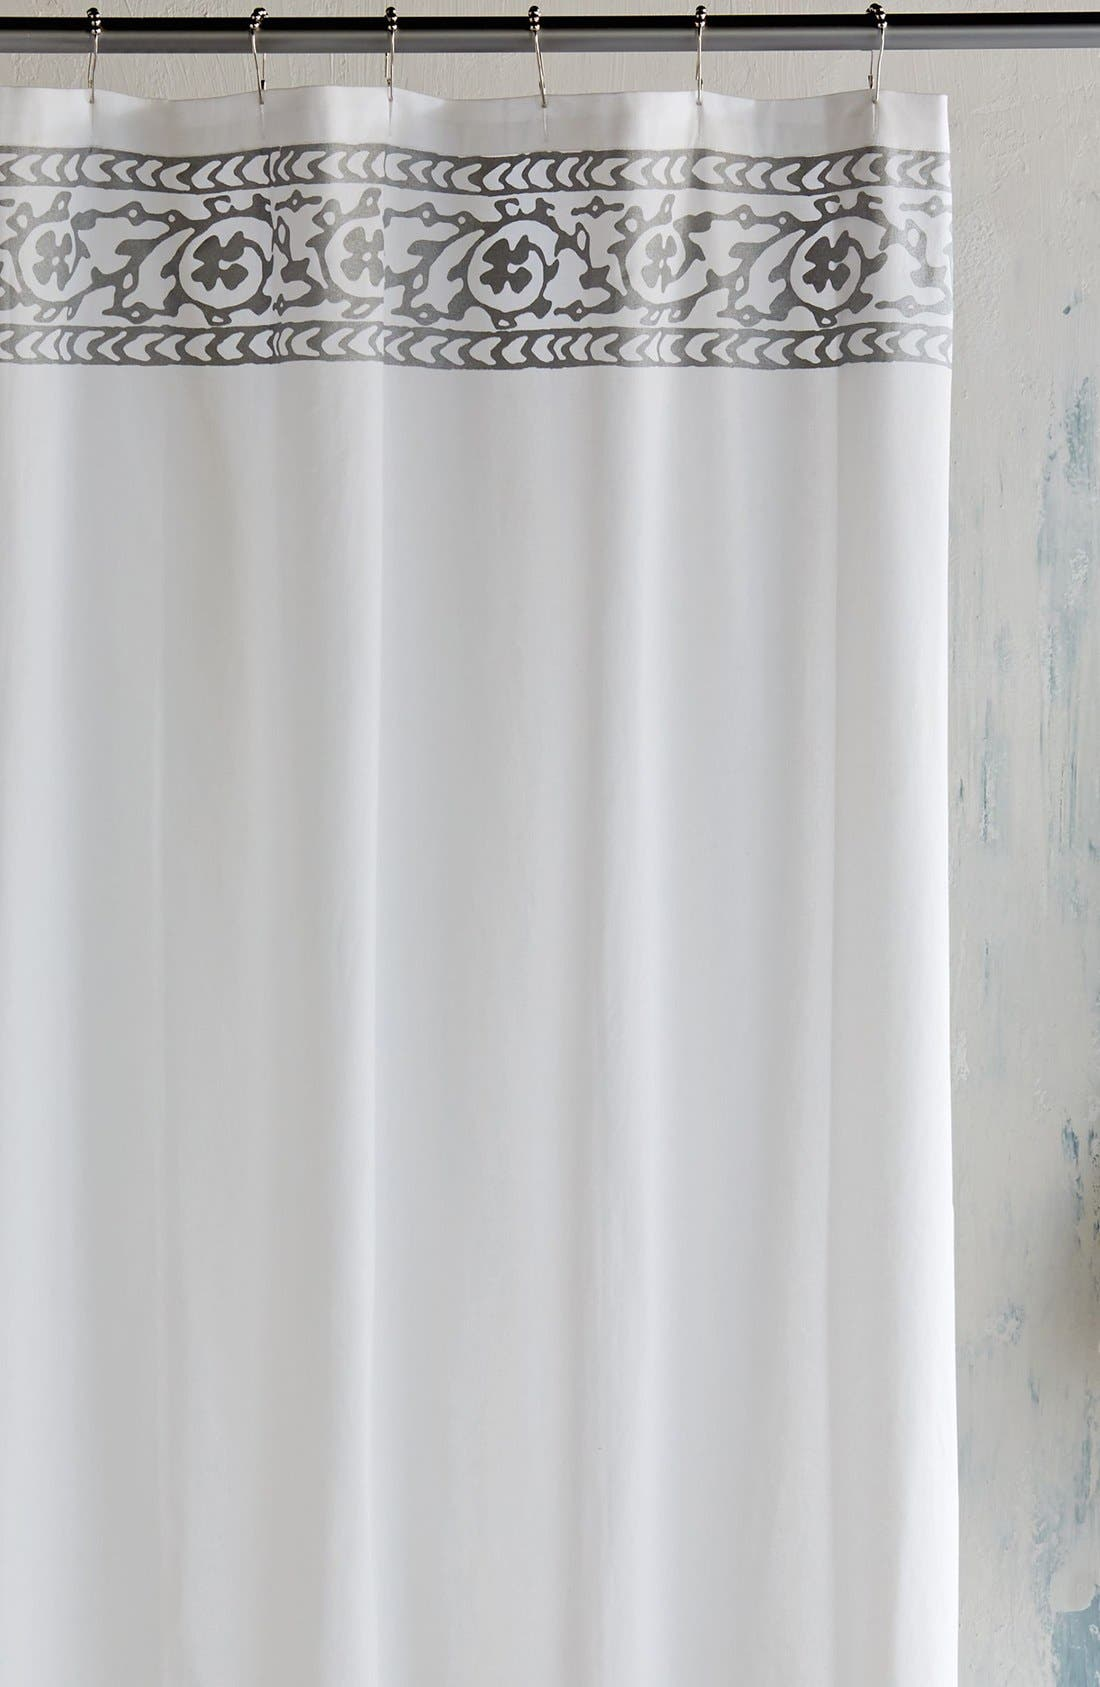 White Waffle Shower Curtain shower curtains | nordstrom | nordstrom